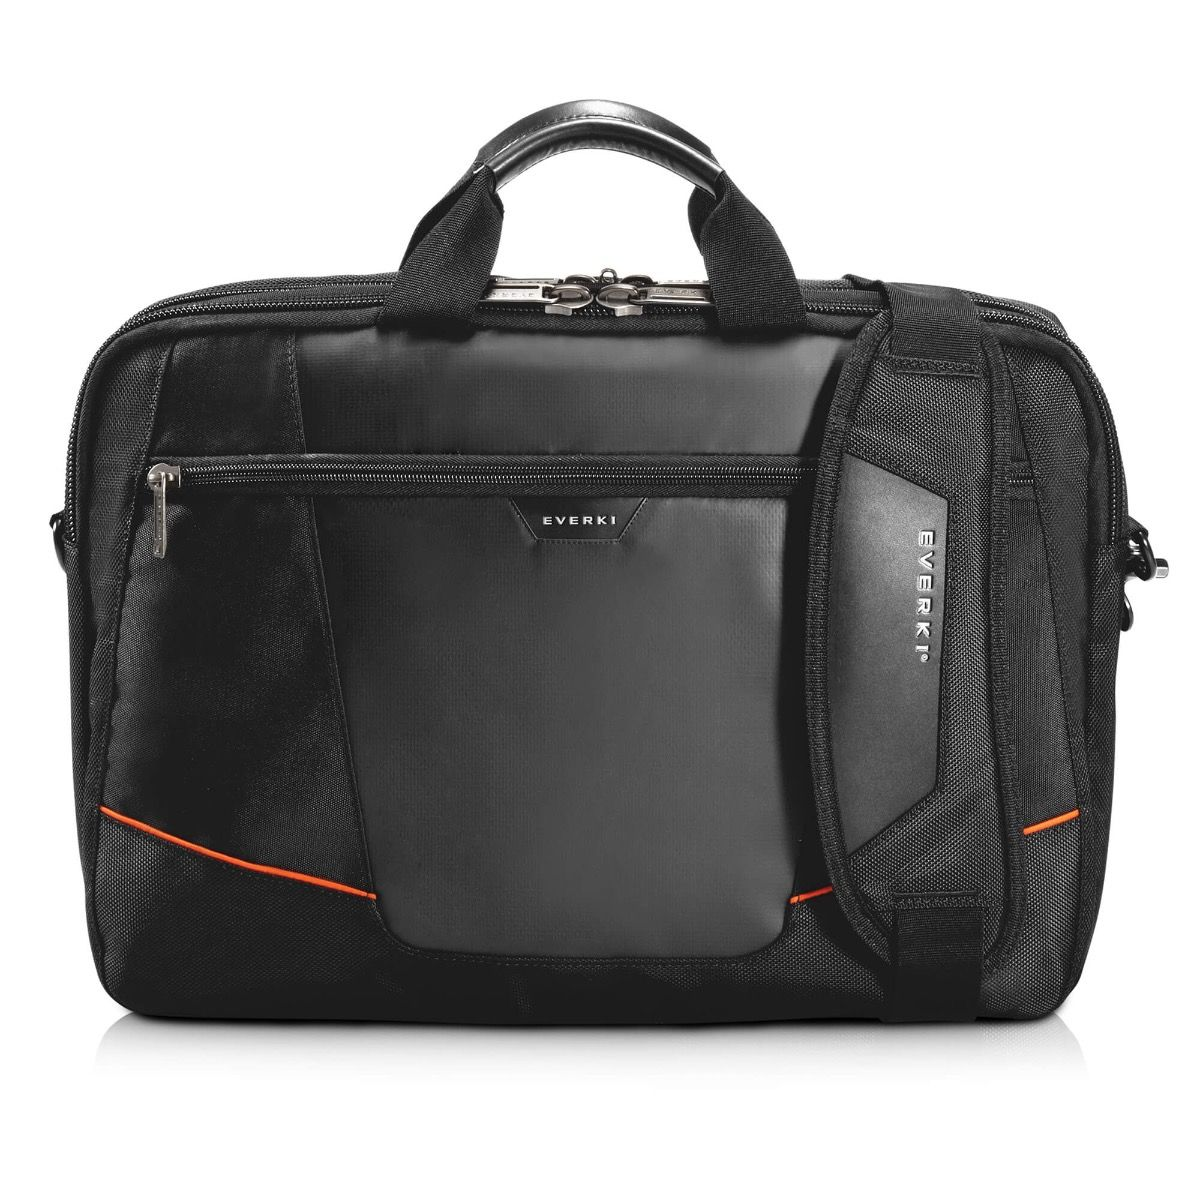 EVERKI Flight Travel Friendly 16 Inch Laptop Briefcase